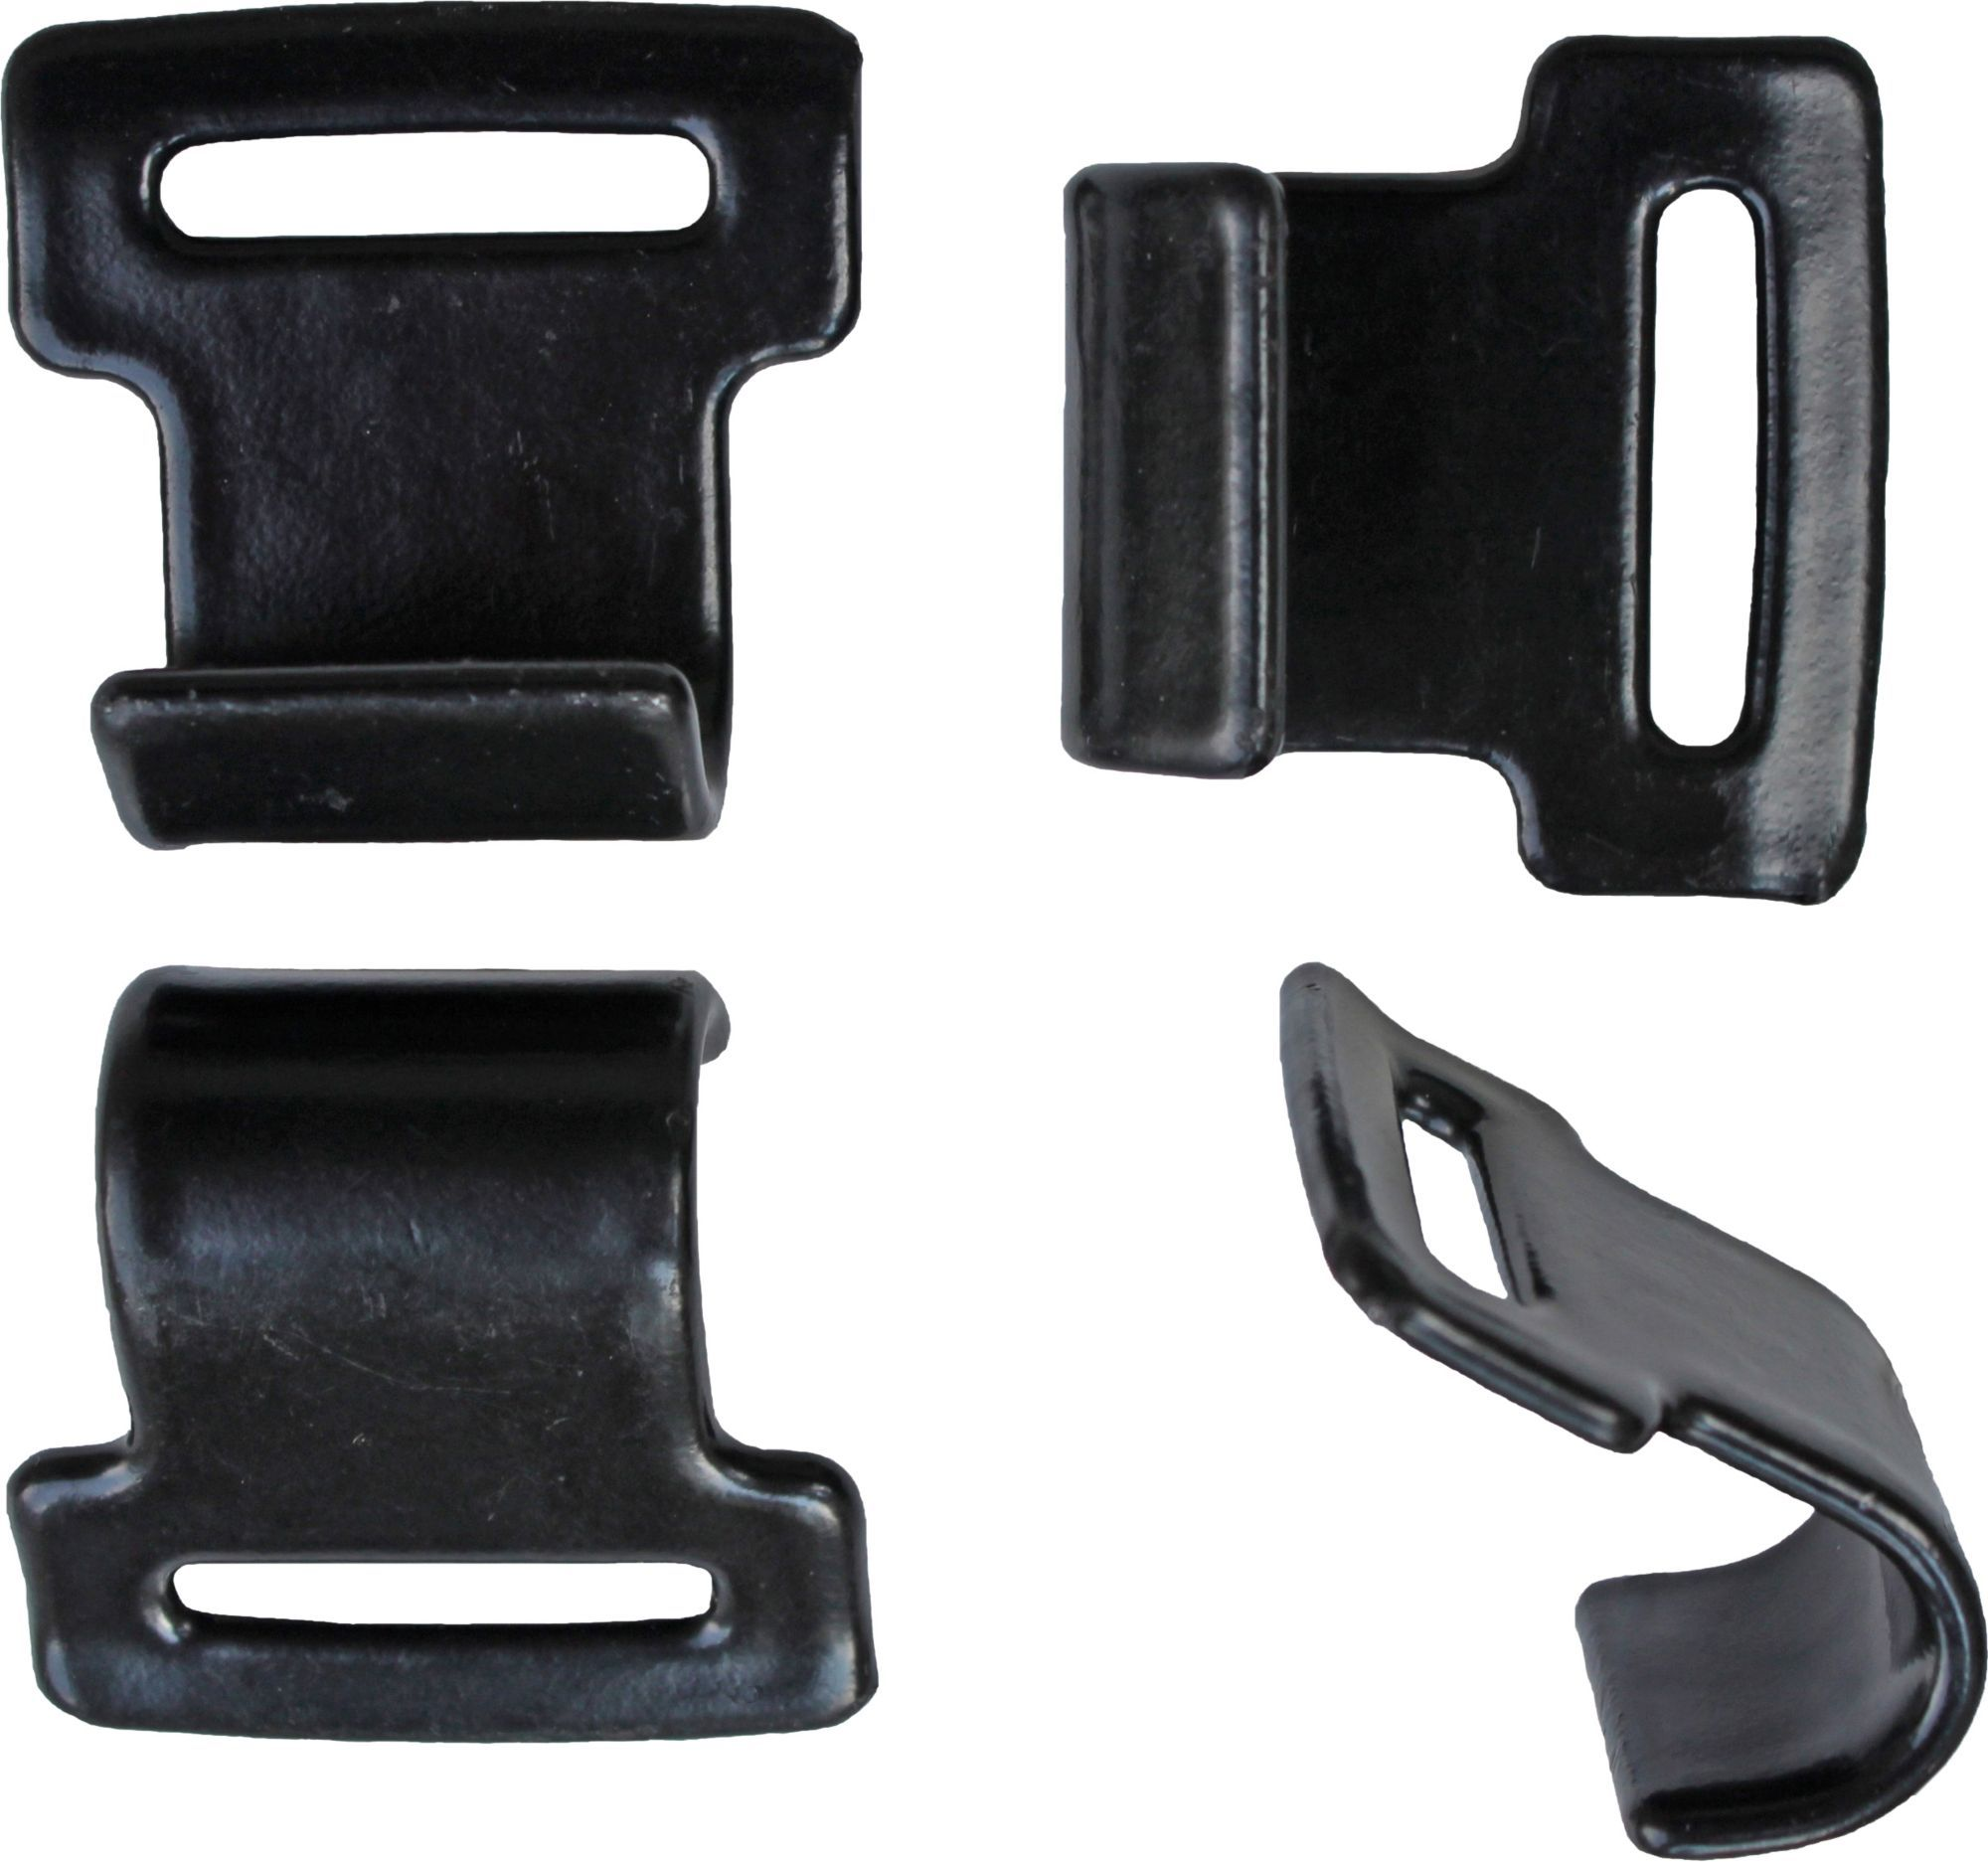 Rightline Gear Replacement Car Clips Products Roof Rack Car Accessories For Guys Car Accessories